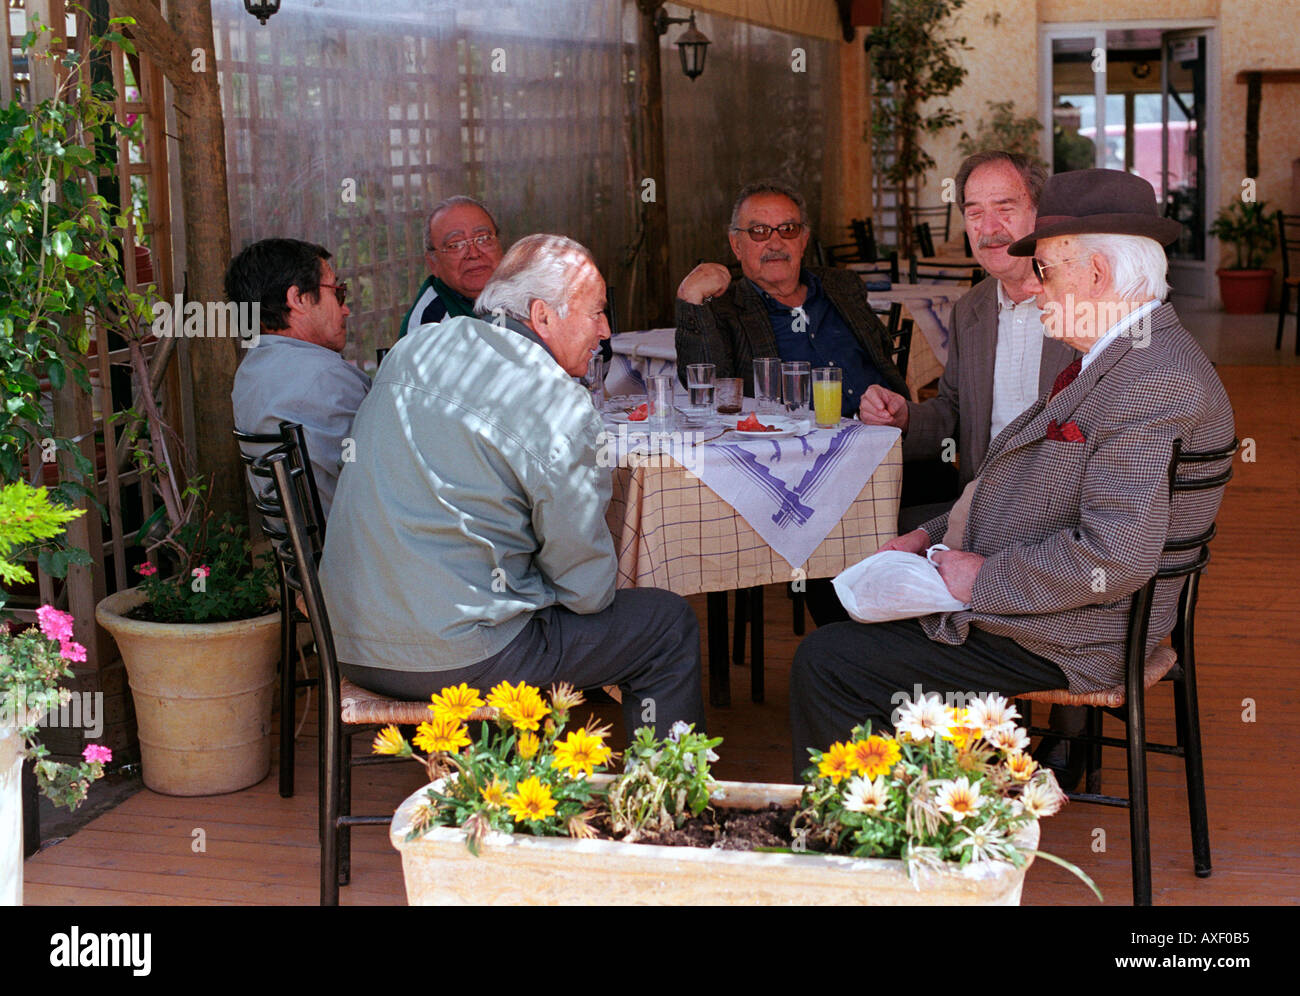 Group of older local men sitting in cafe bar chatting and drinking in Arastoli on Kefalonia Greek Island. - Stock Image